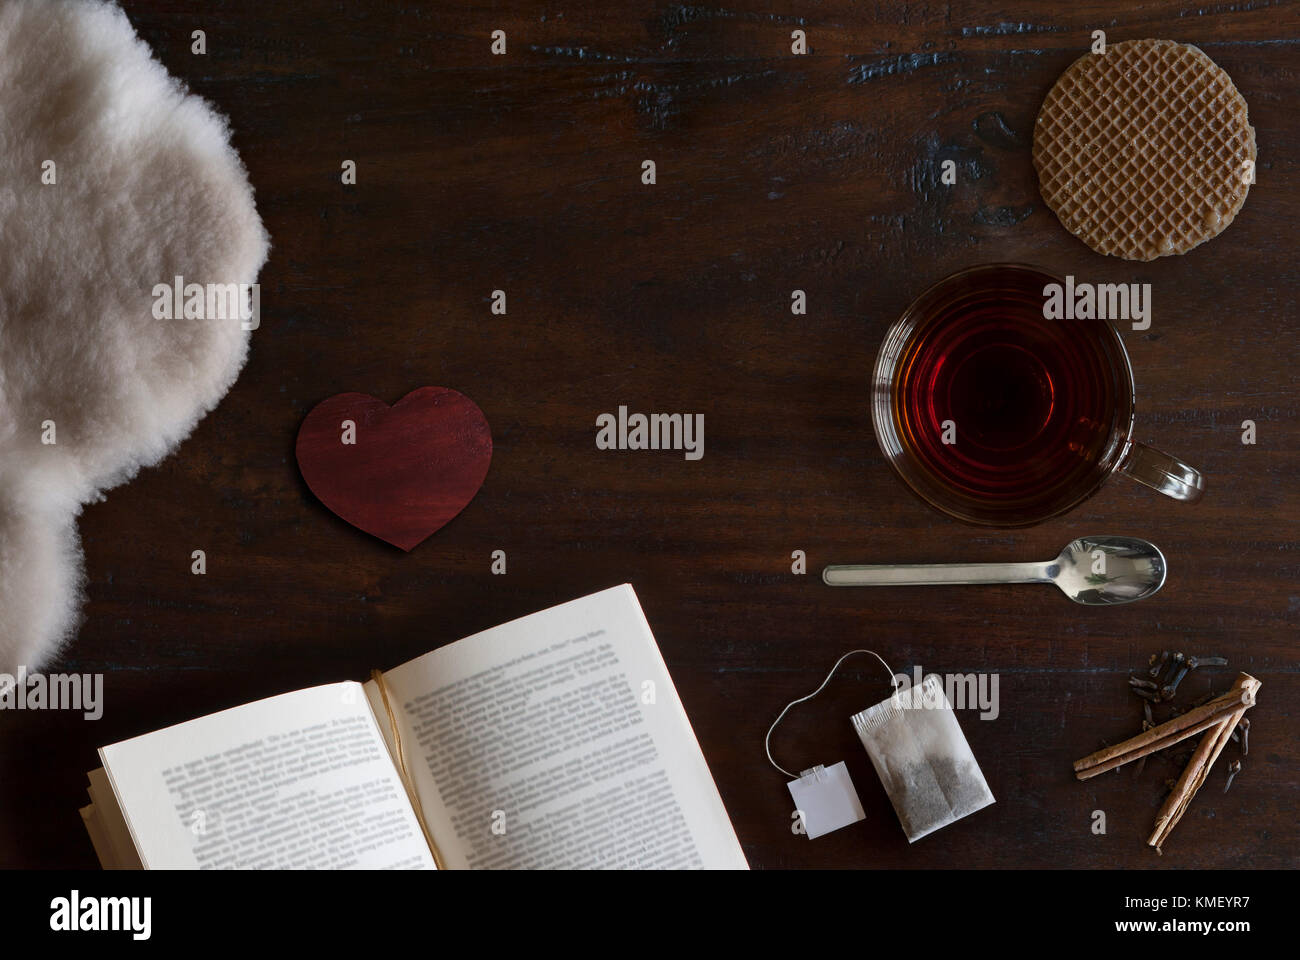 beautiful cozily flat lay of cup of tea, book, sheepskin, cookie and spices on rustic wooden ground - Stock Image